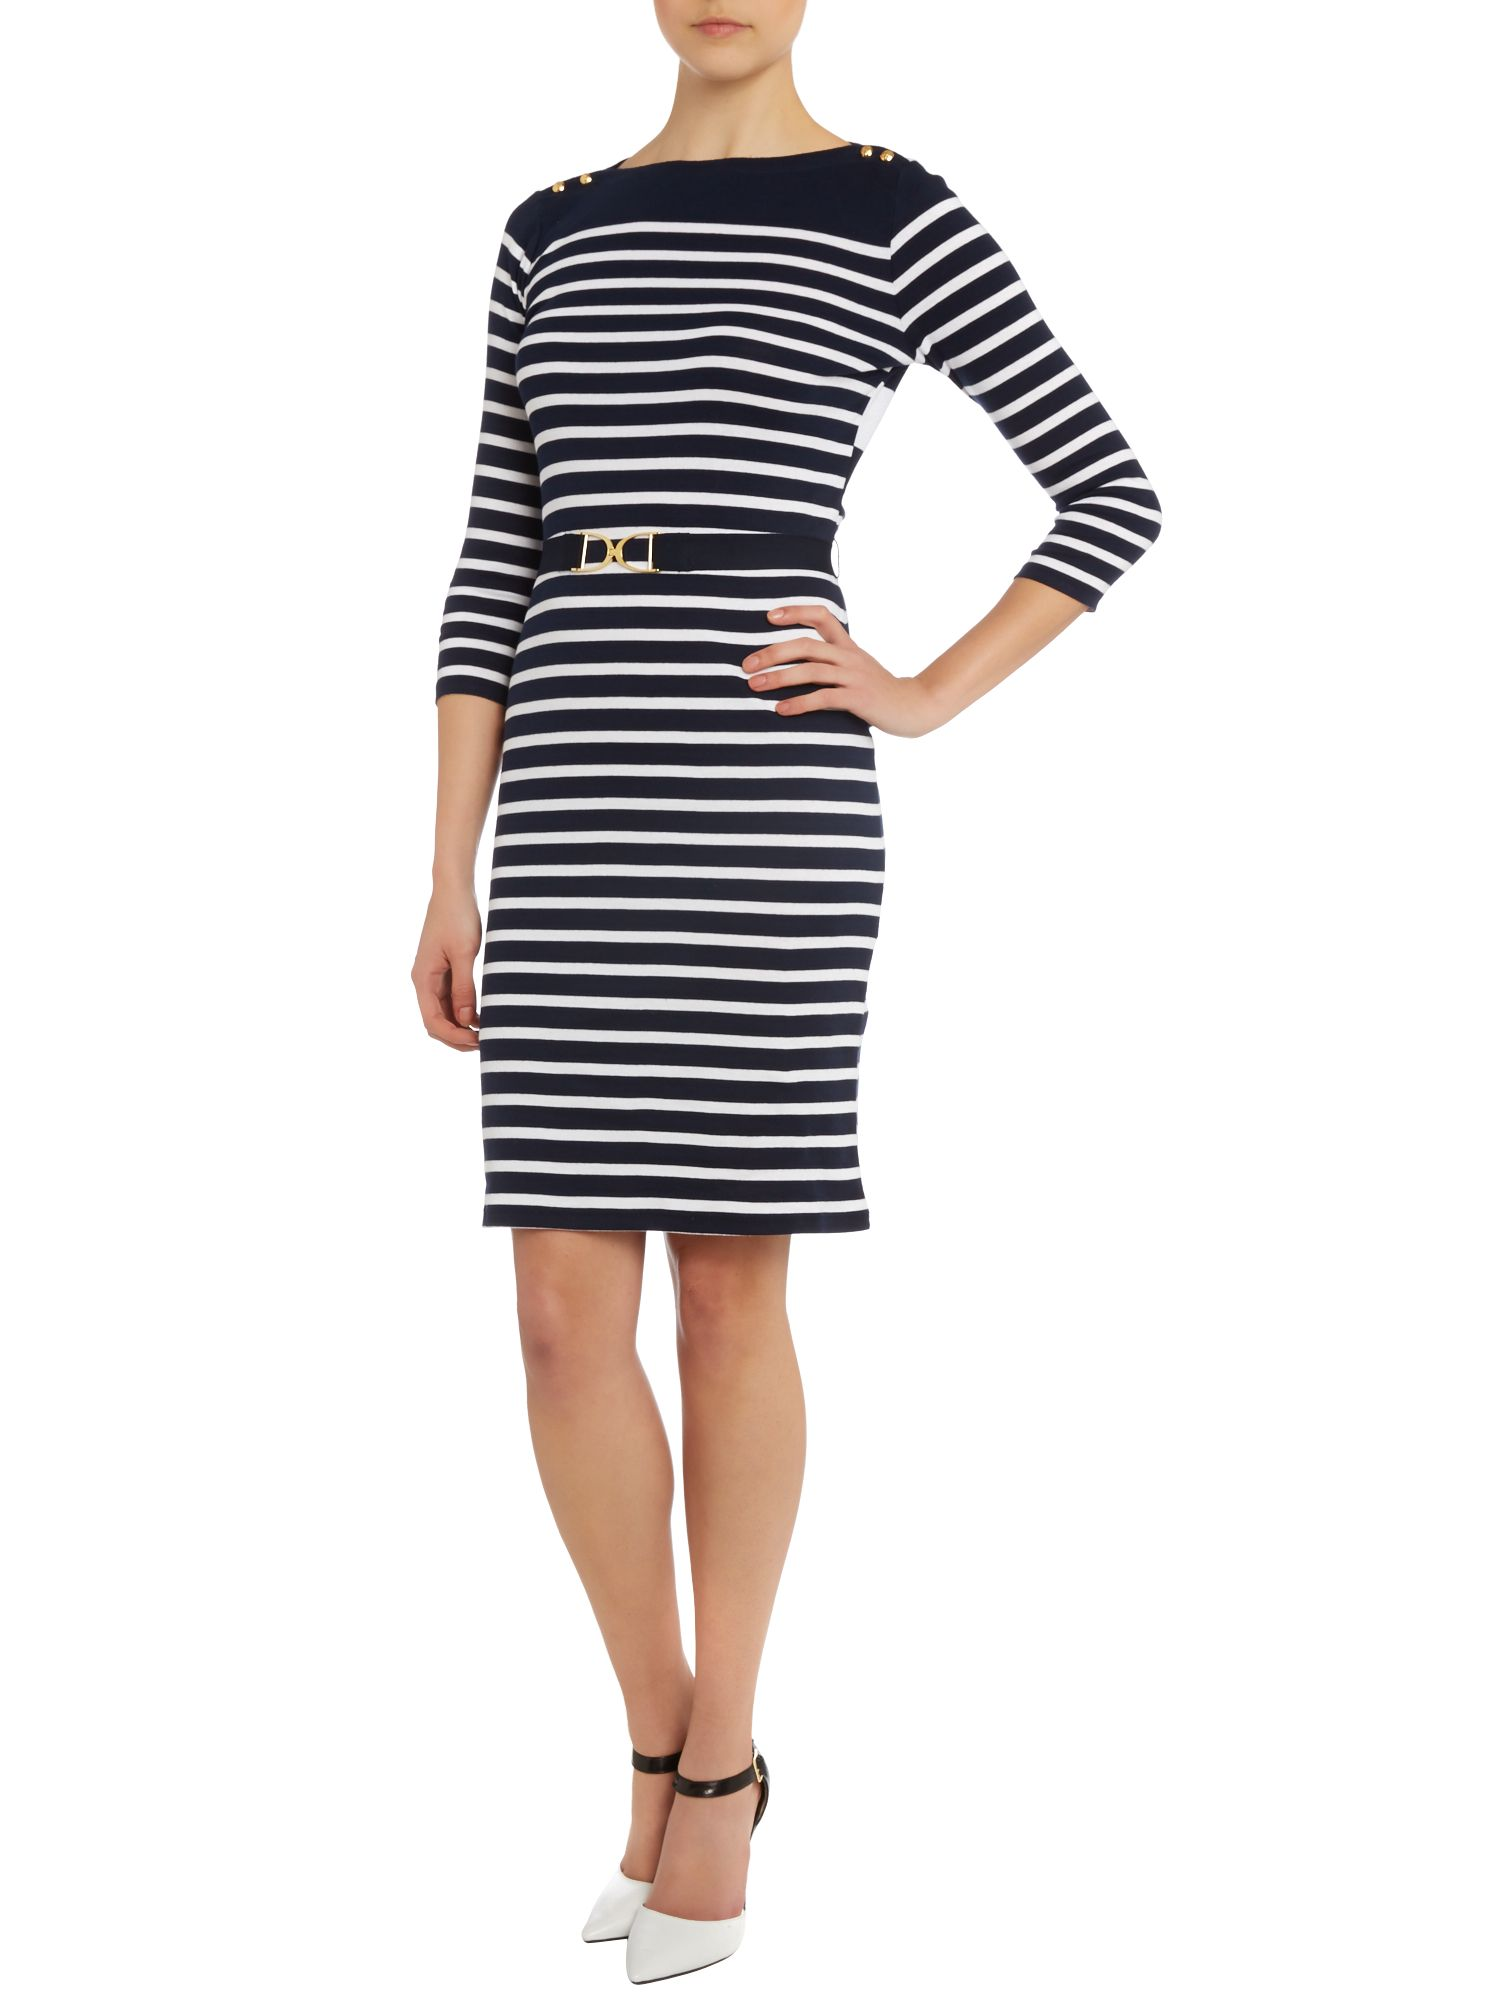 Striped belted dress with button detail